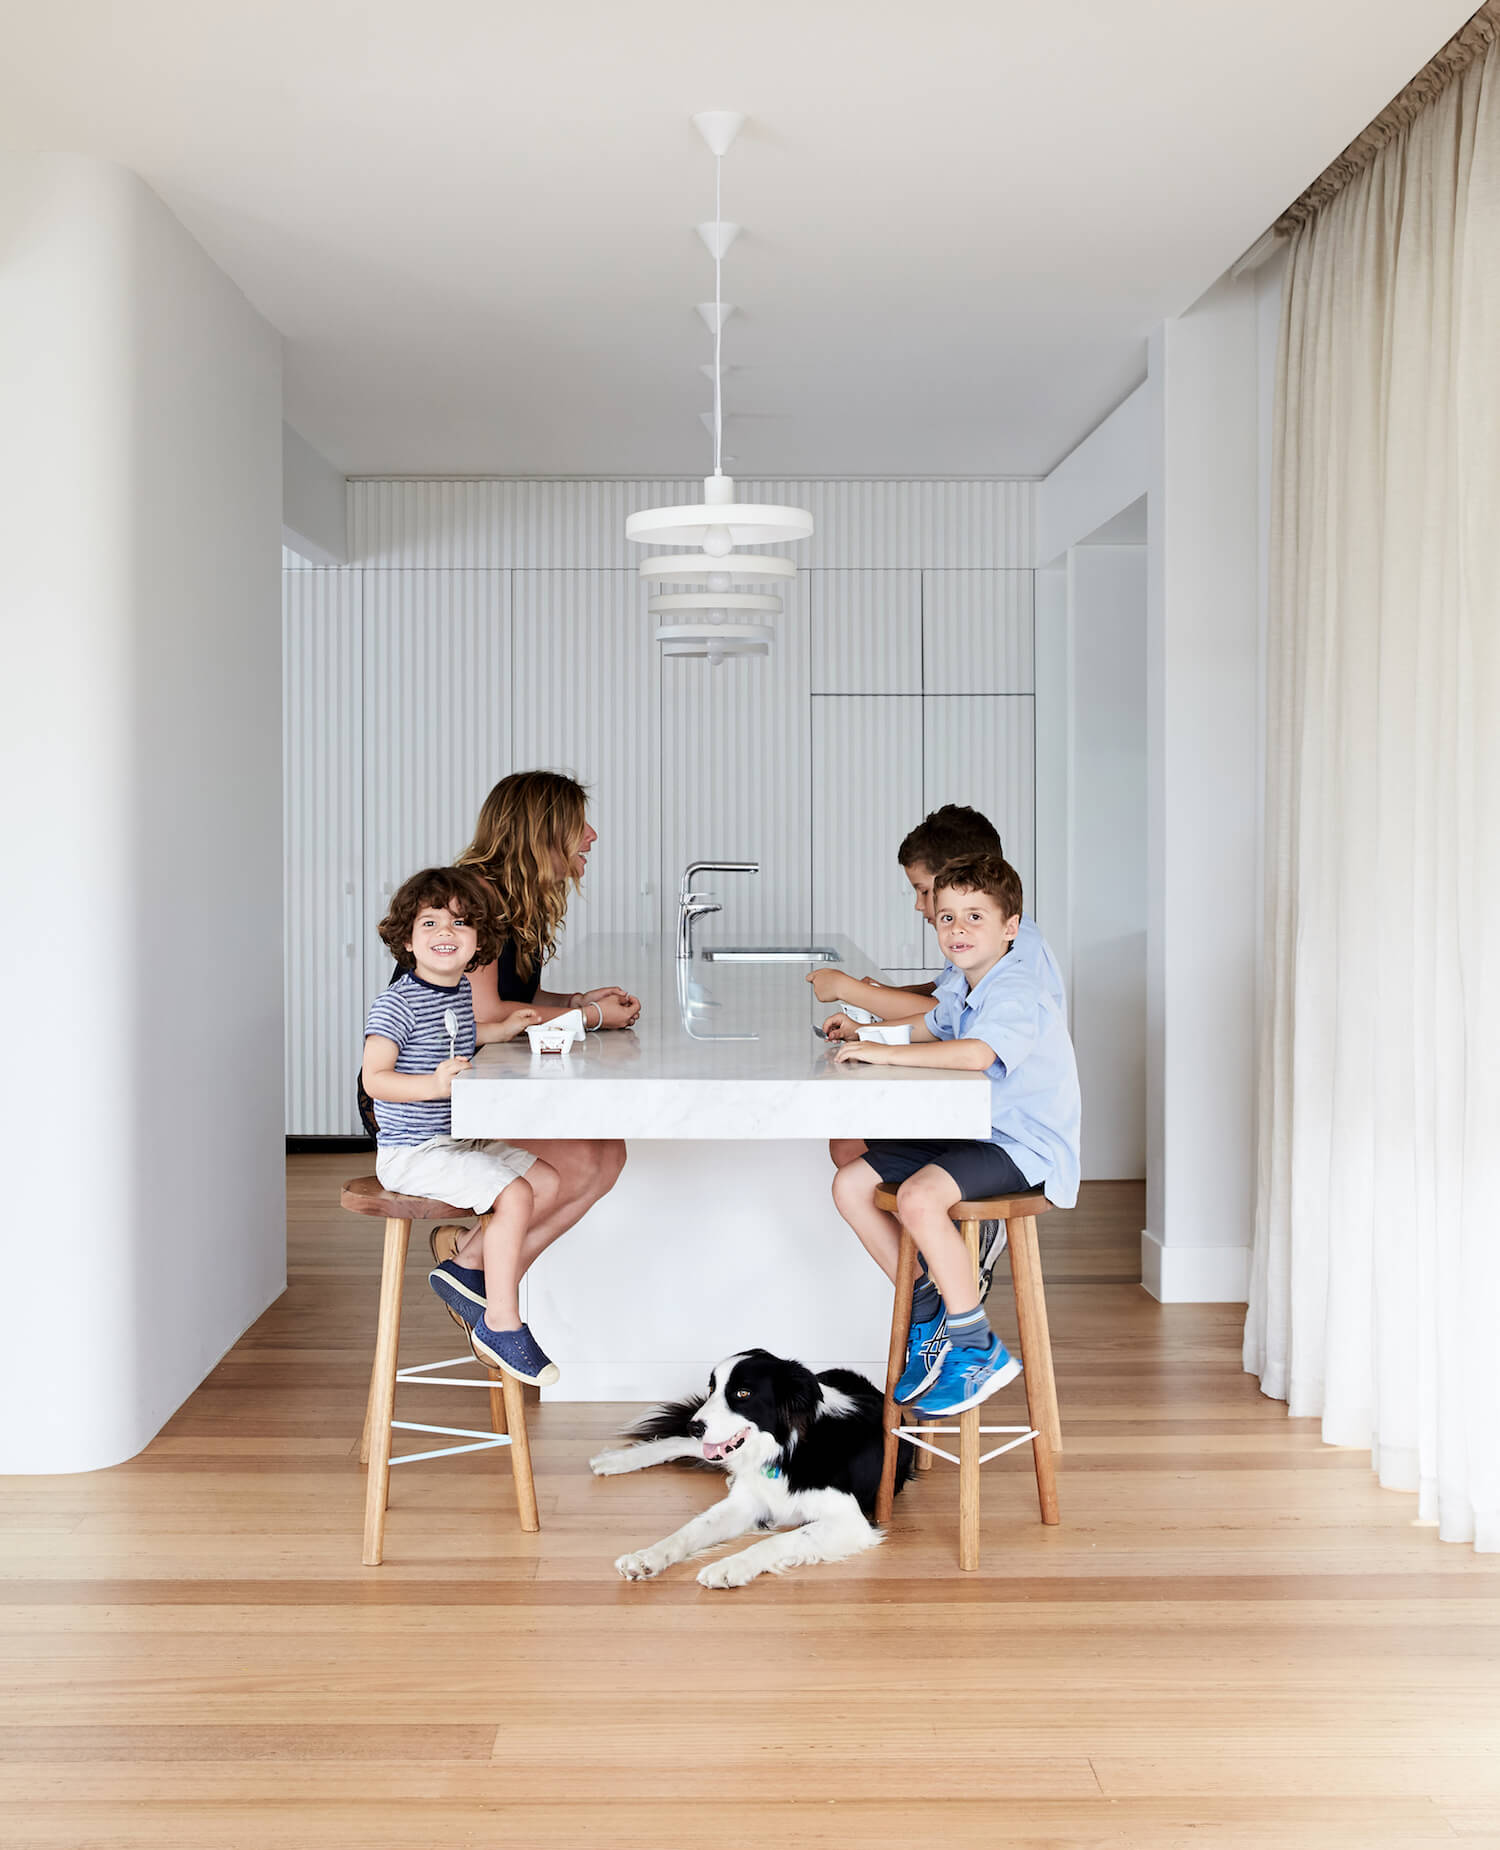 est living australian interiors Architecture Design Holroyd 08 kitchen2